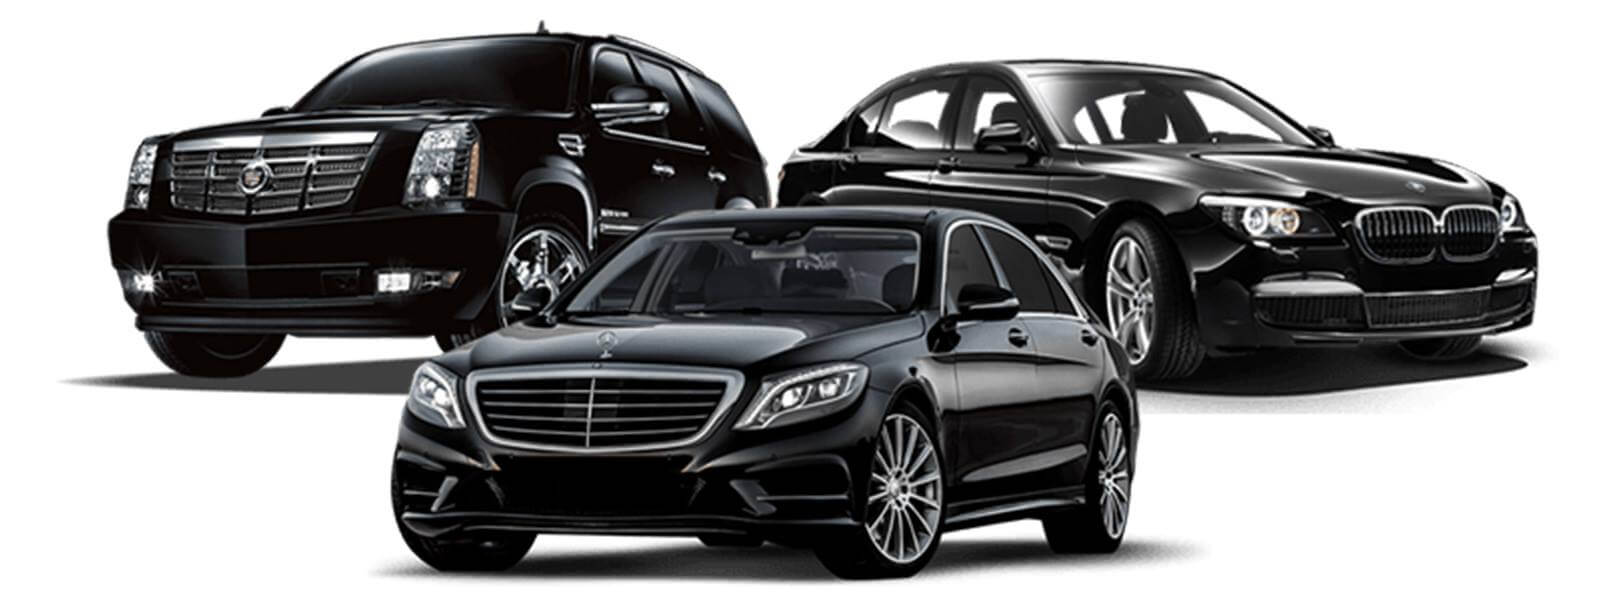 Exotic And Luxurious Vehicle Rental Agency In Dhaka Bangladesh